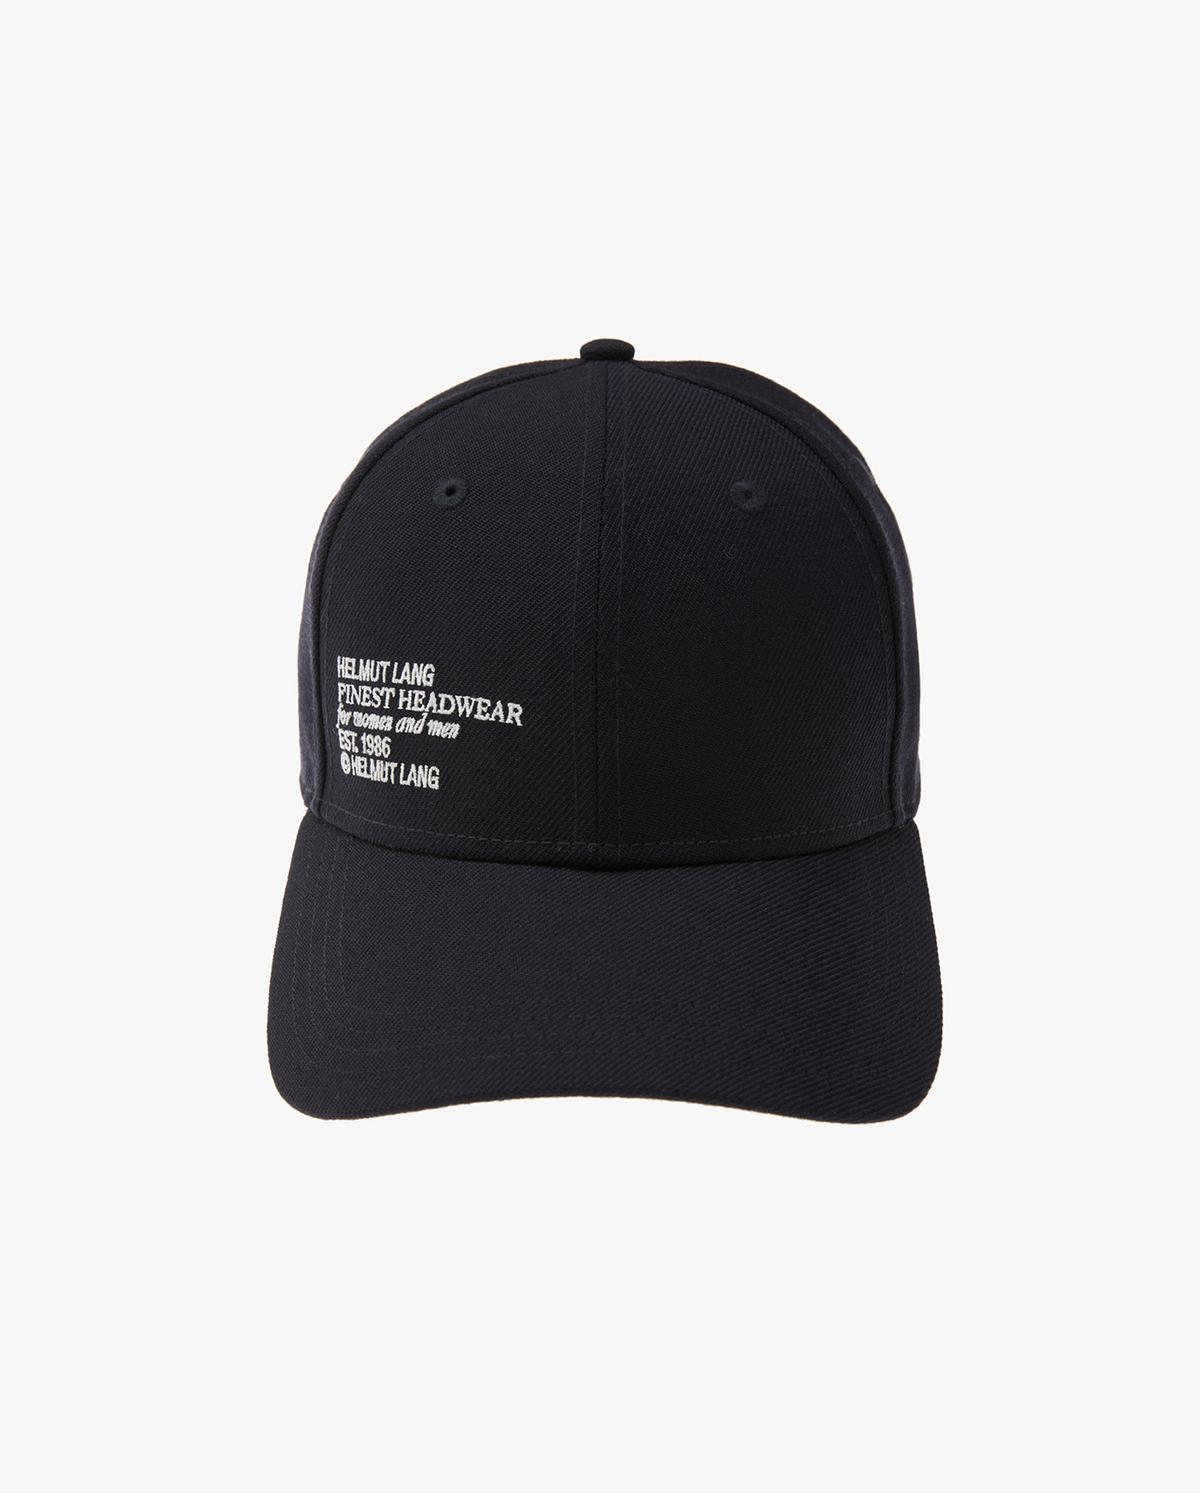 New Era x Helmut Lang 9Forty Hat